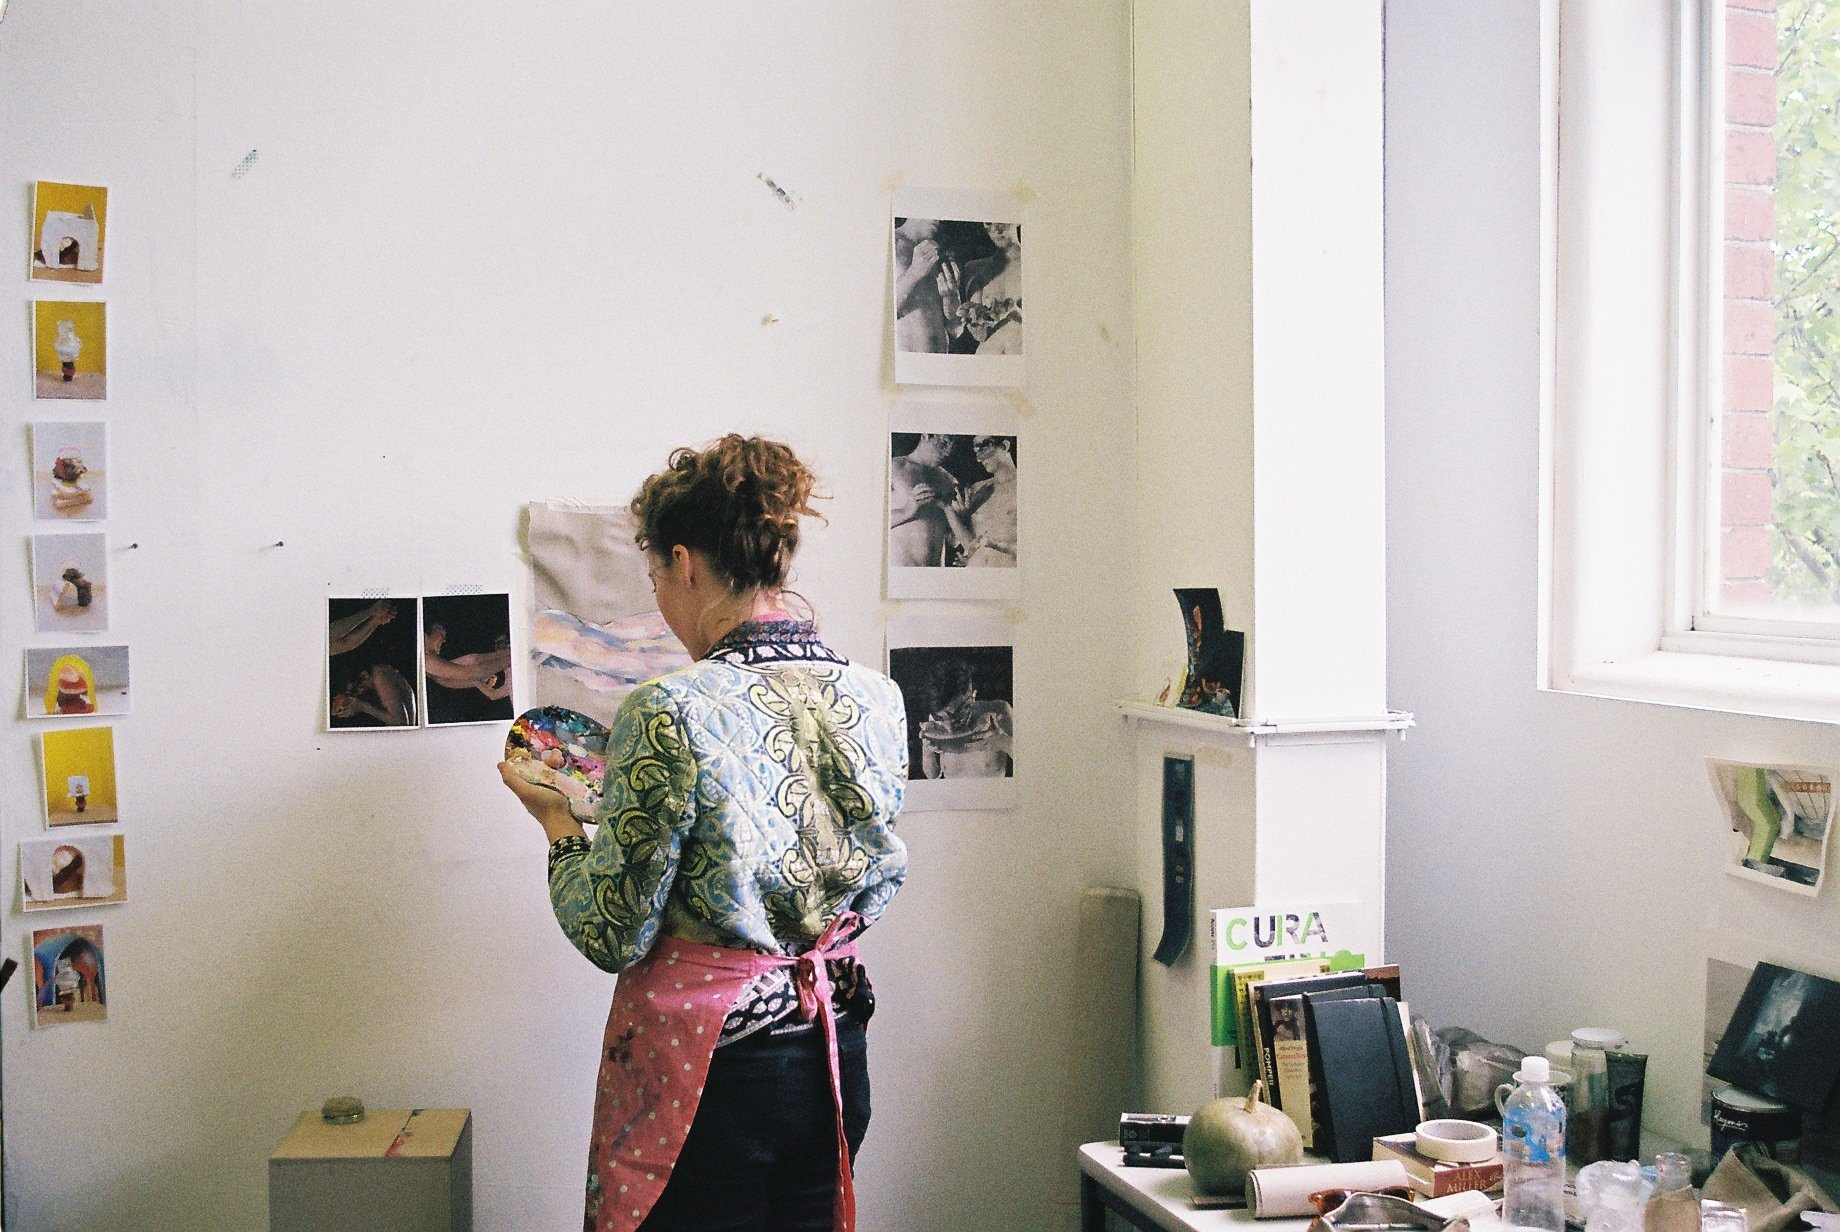 Photo of Candice painting in a studio